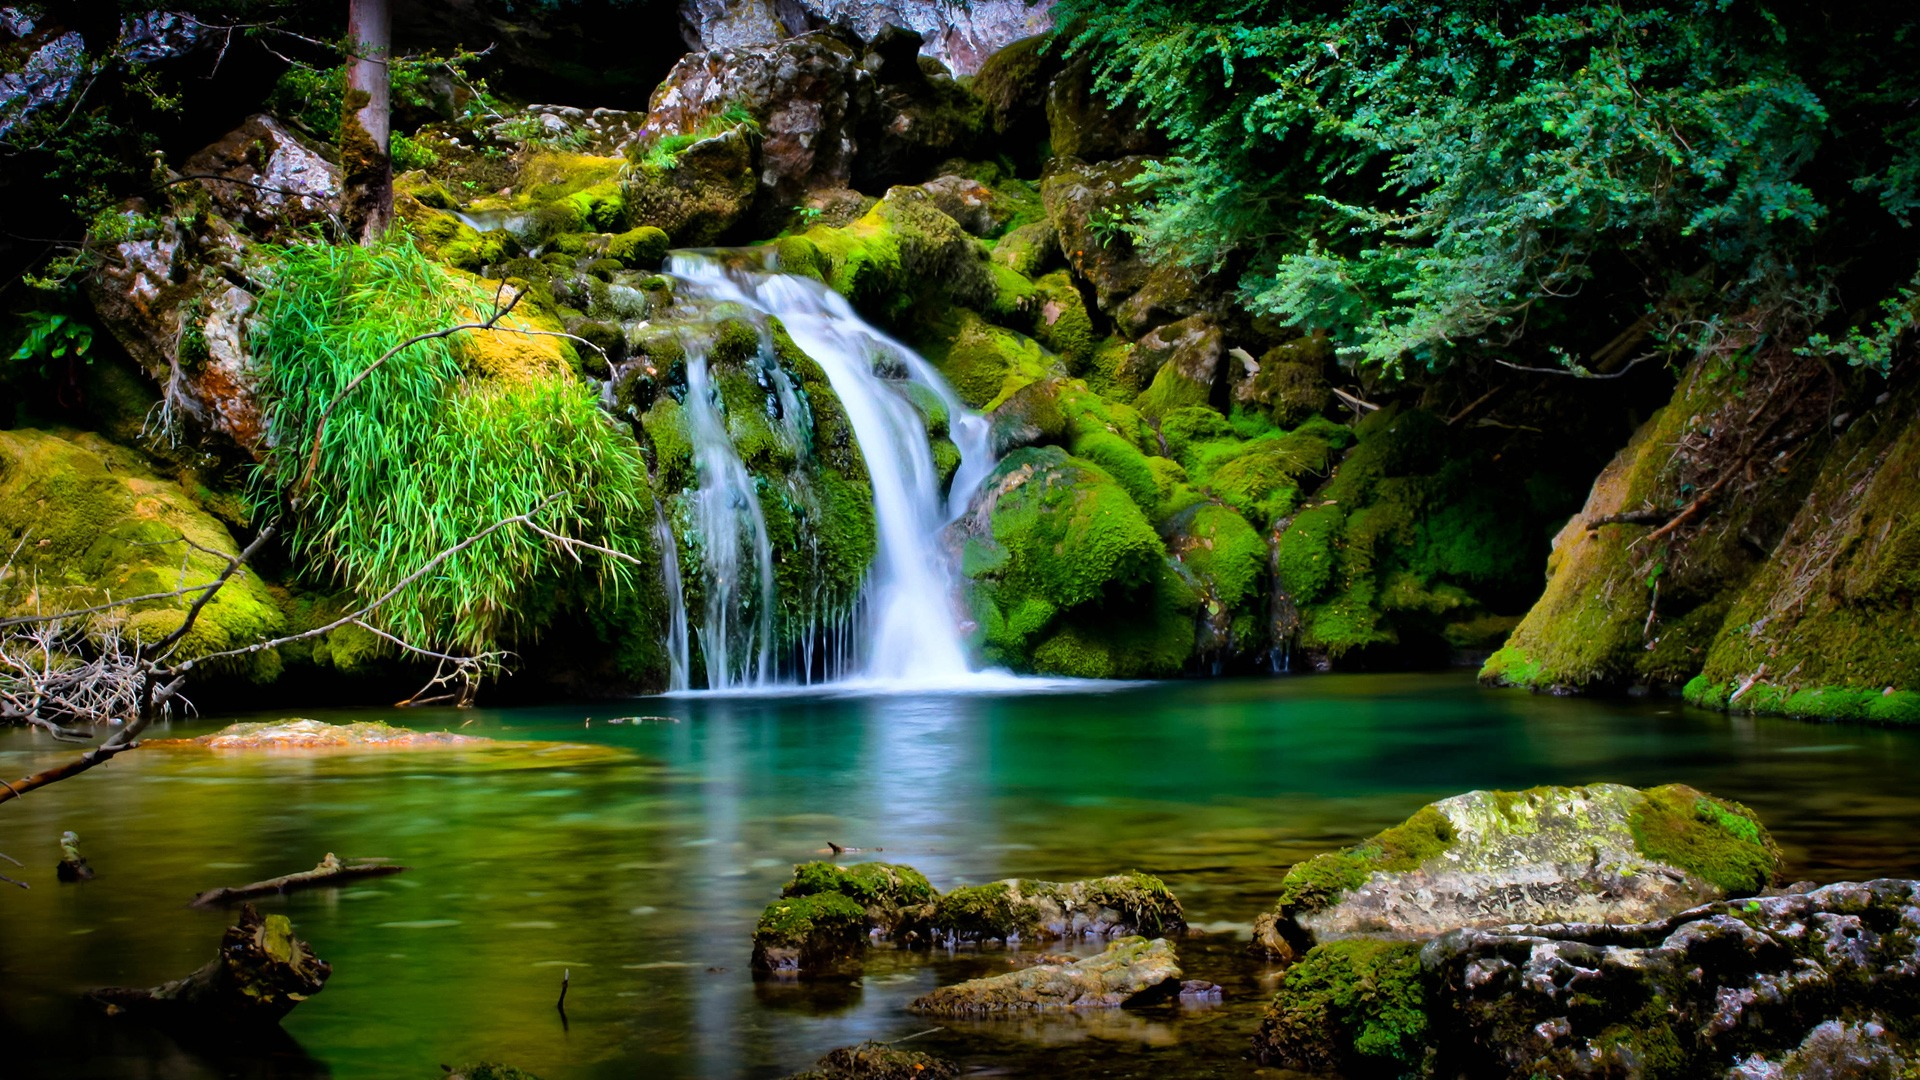 Download serene desktop waterfall wallpaper HD wallpaper 1920x1080